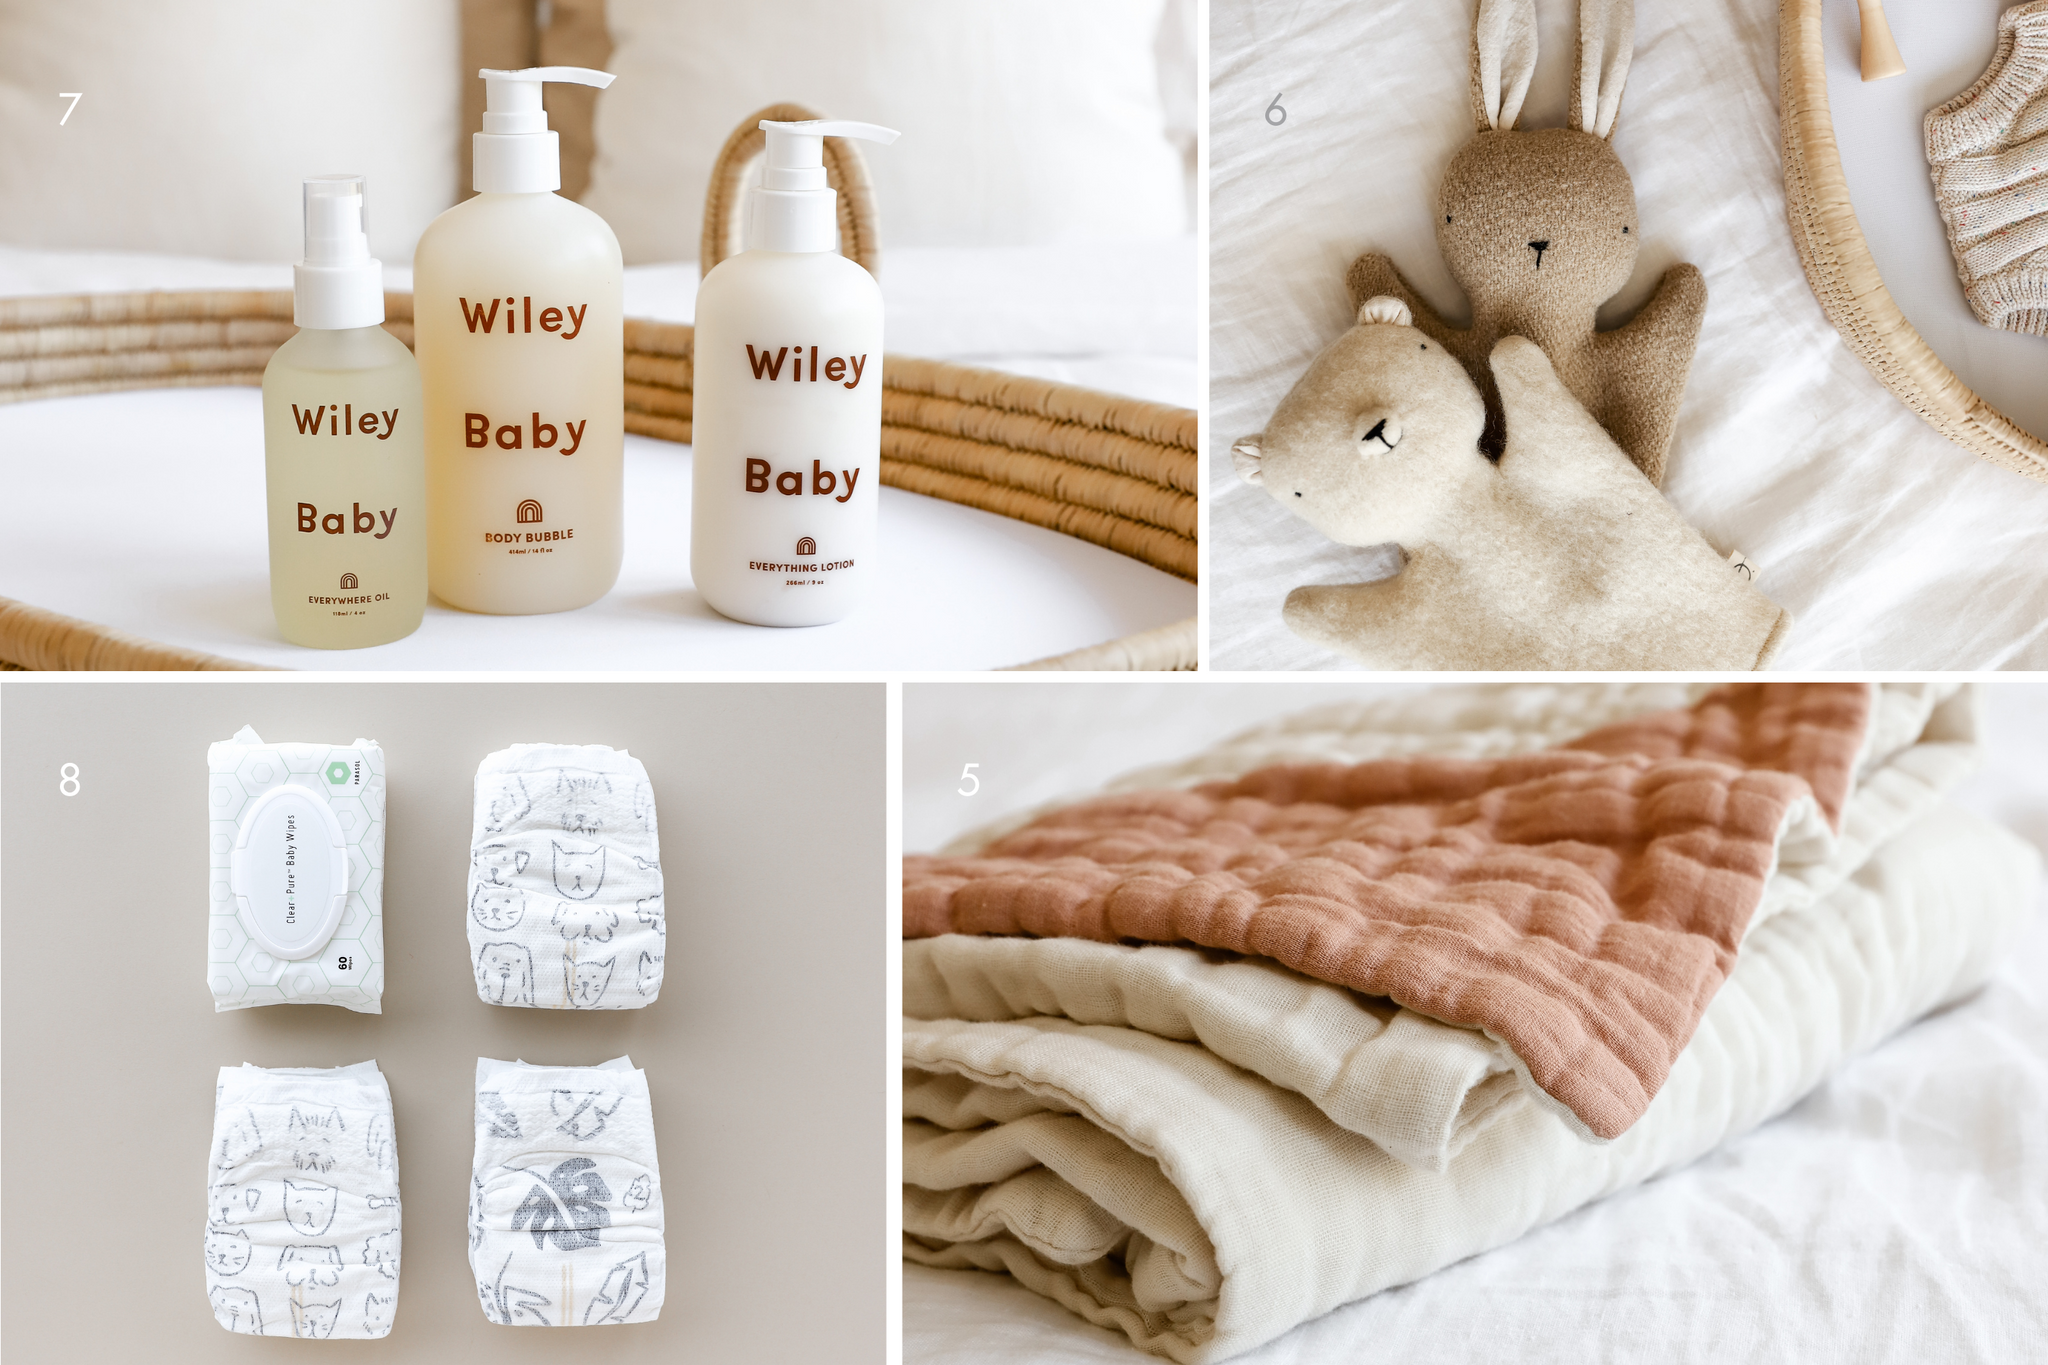 Four images, clockwise from top left: three bottles of Wiley Body Bubble, Wiley lotion, and Wiley body oil; two handmade puppets, a bear and a bunny, from Oustitine; a thick organic blanket from Willaby, folded; three diapers and a pack of wipes from Parasol Co.